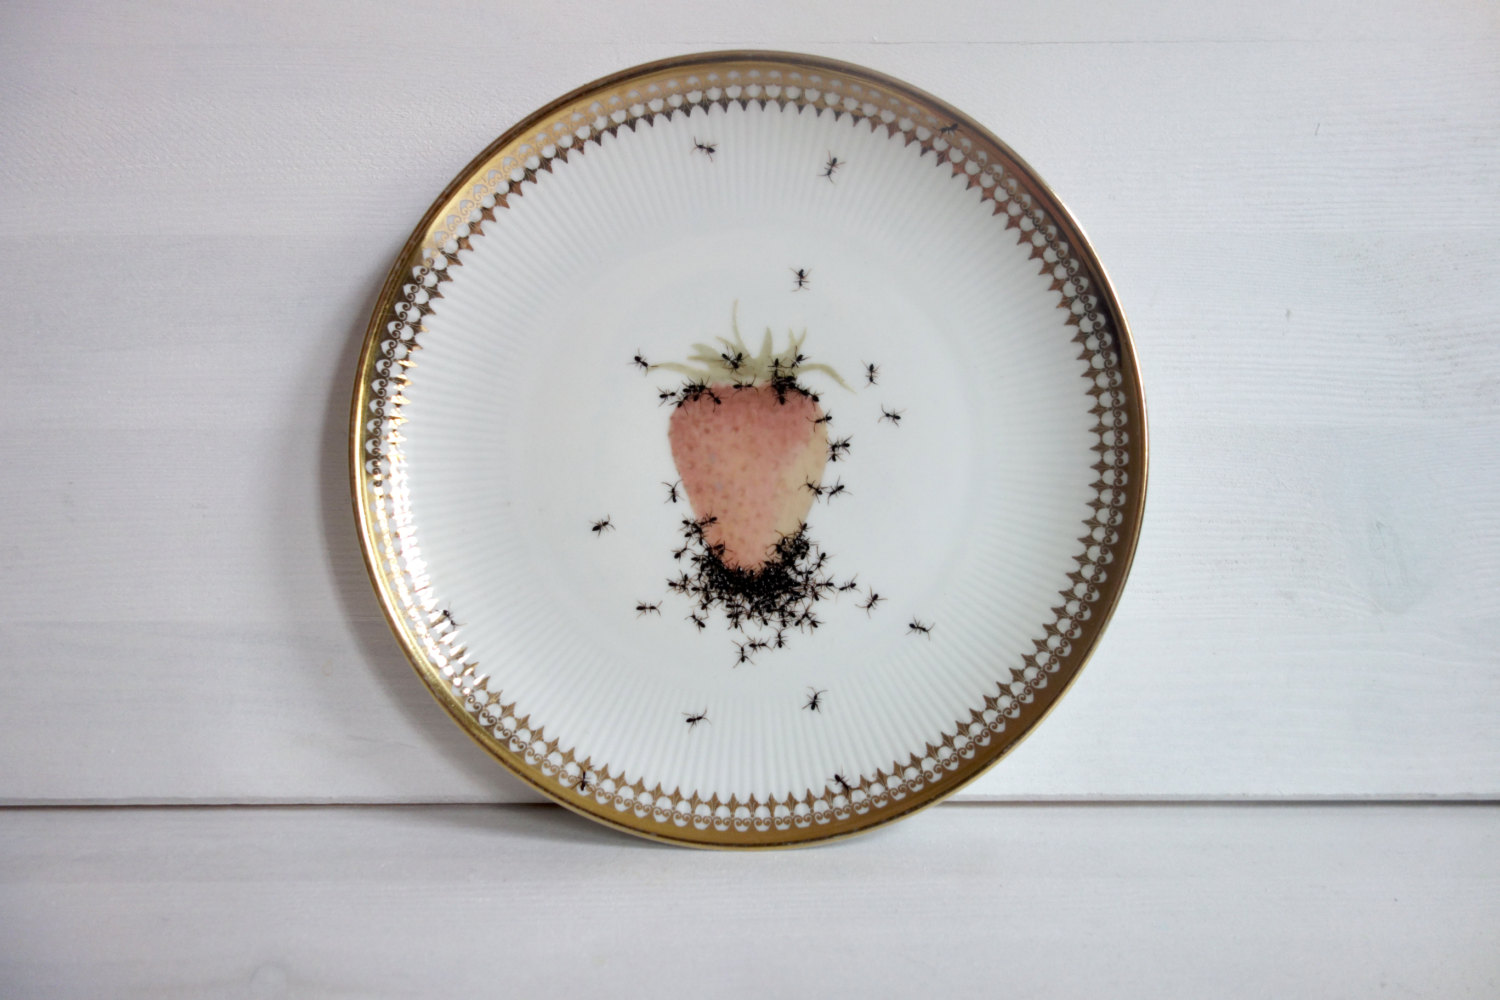 Plate 2 - Hand Painted Porcelain Plate by La Philie - Evelyn Bracklow